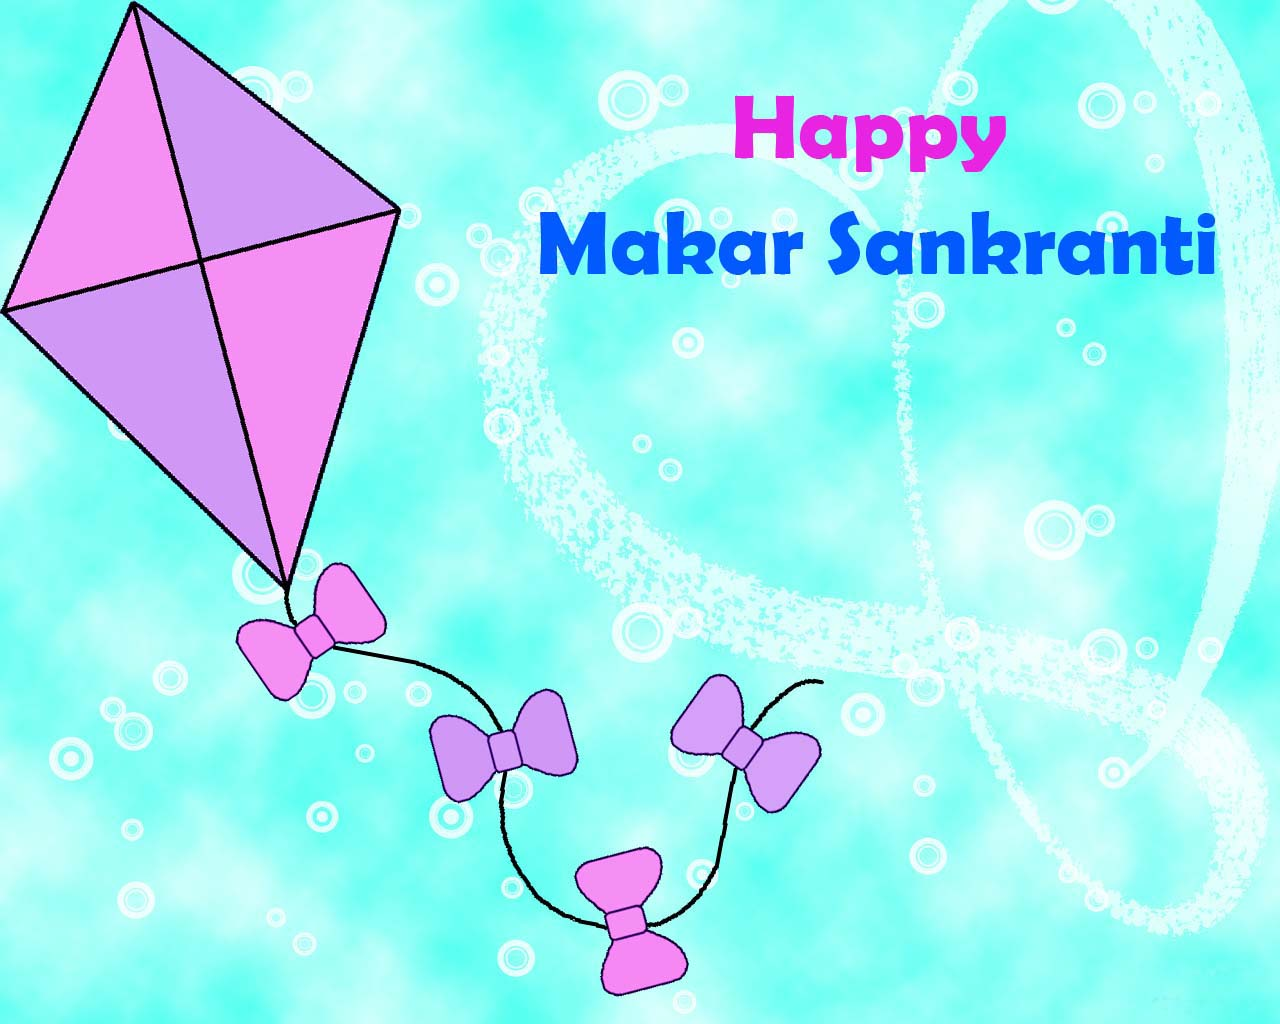 Happy makar sankranti and happy uttarayan greetings wishes hd best happy makar sankranti and happy uttarayan greetings wishes hd best size wallpapers free download m4hsunfo